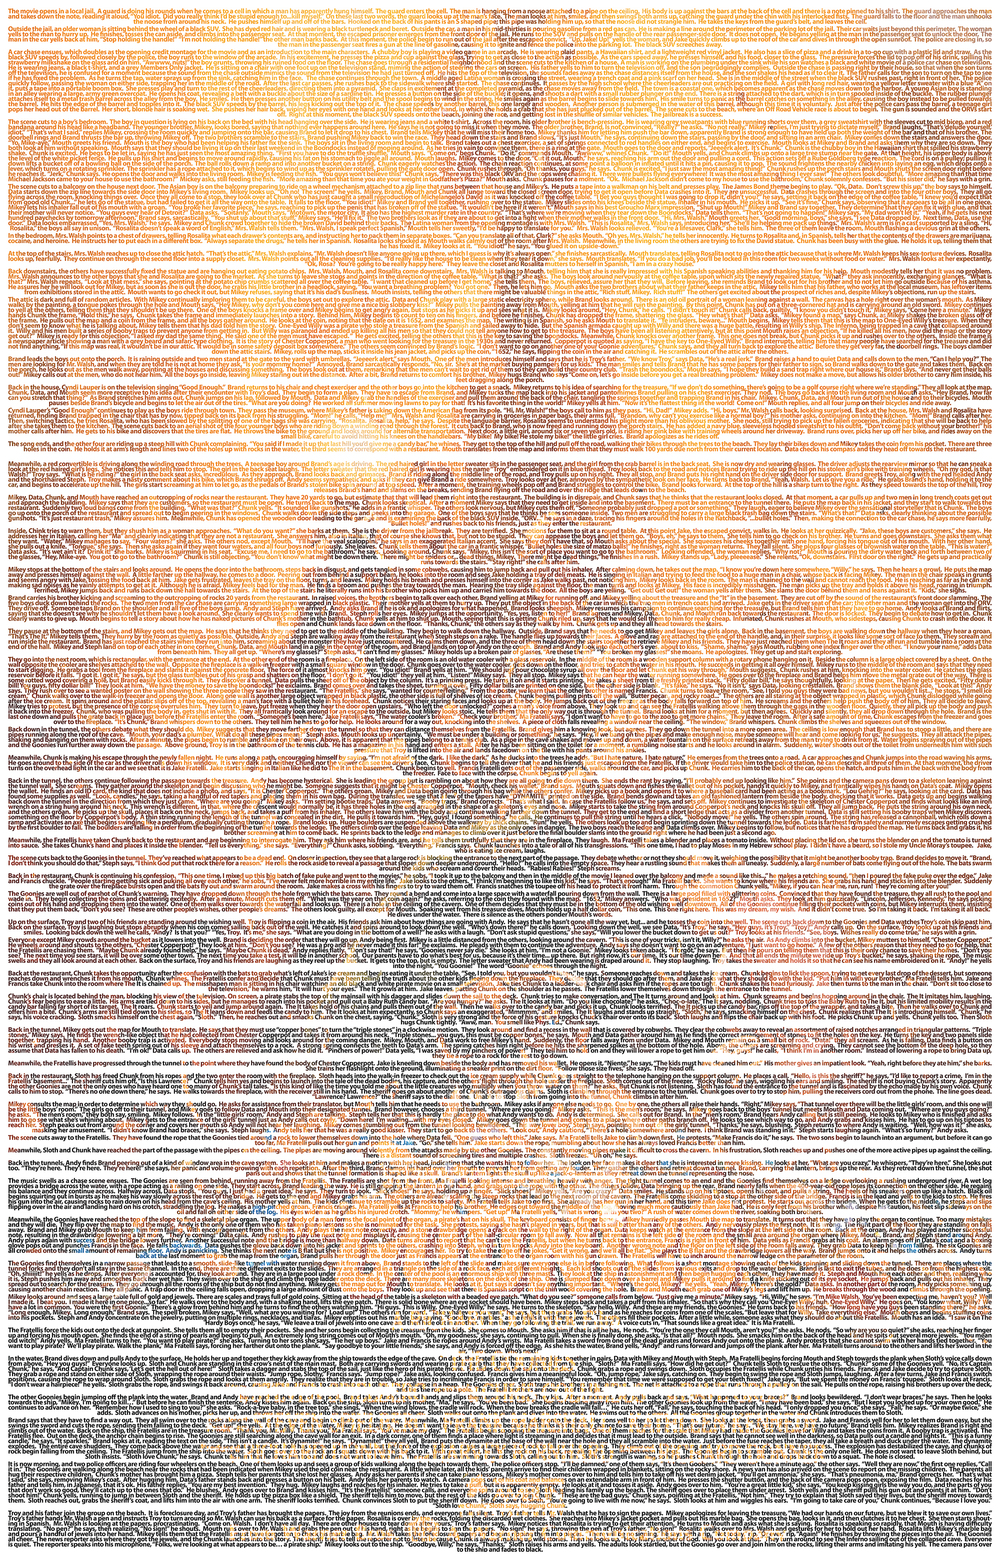 The Goonies (from memory)